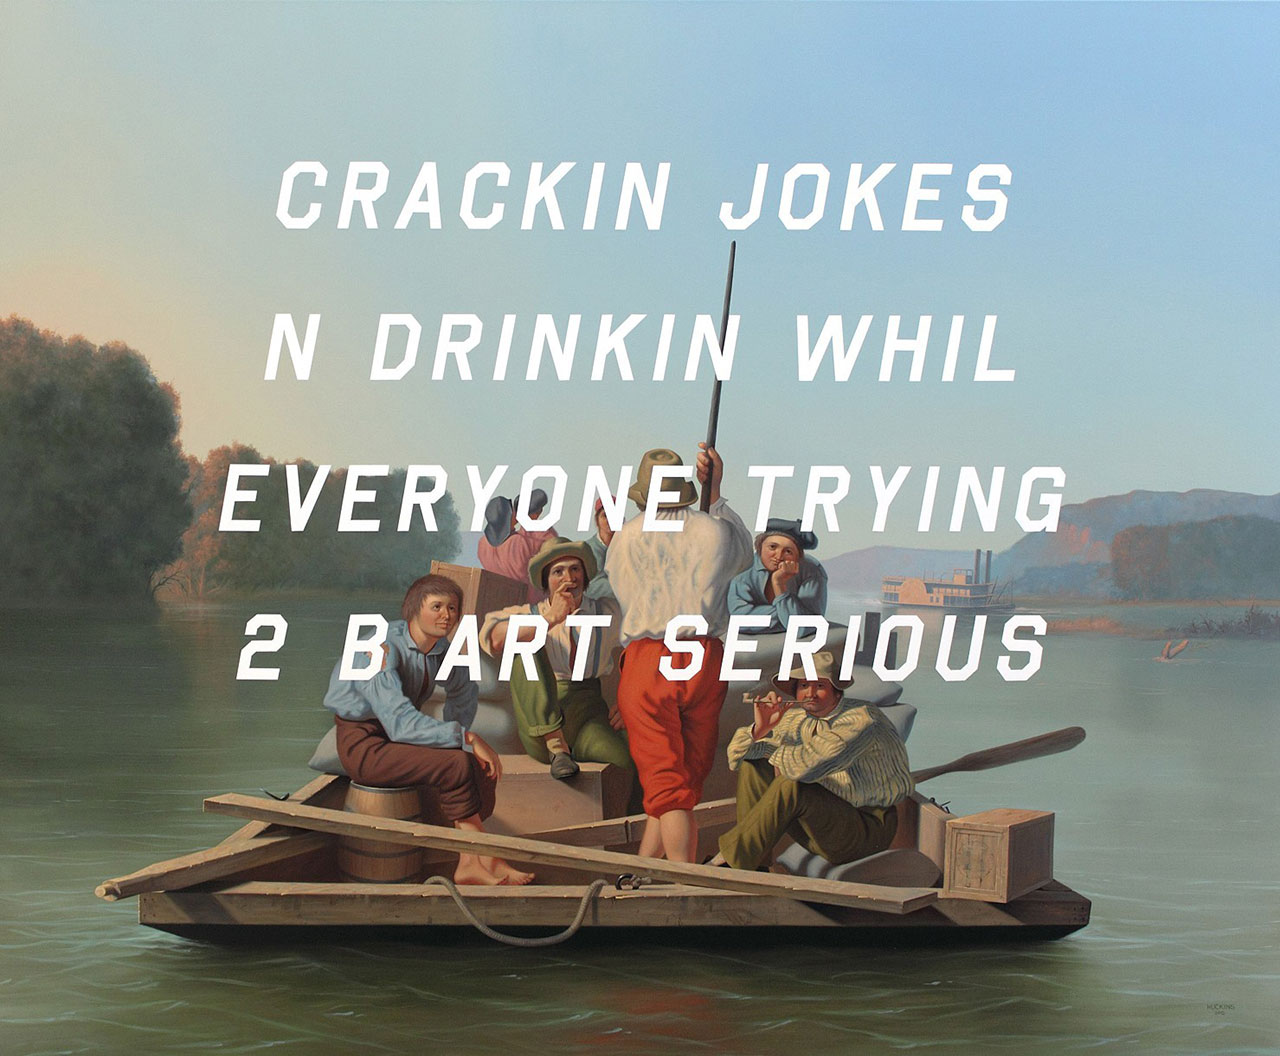 Shawn Huckins, Lighter Relieving A Steamboat Aground: Cracking Jokes And Drinking While Everyone's Trying To Be Art Serious, acrylic on canvas, 64 x 78 in (163 x 198 cm), 2015. Private collection.